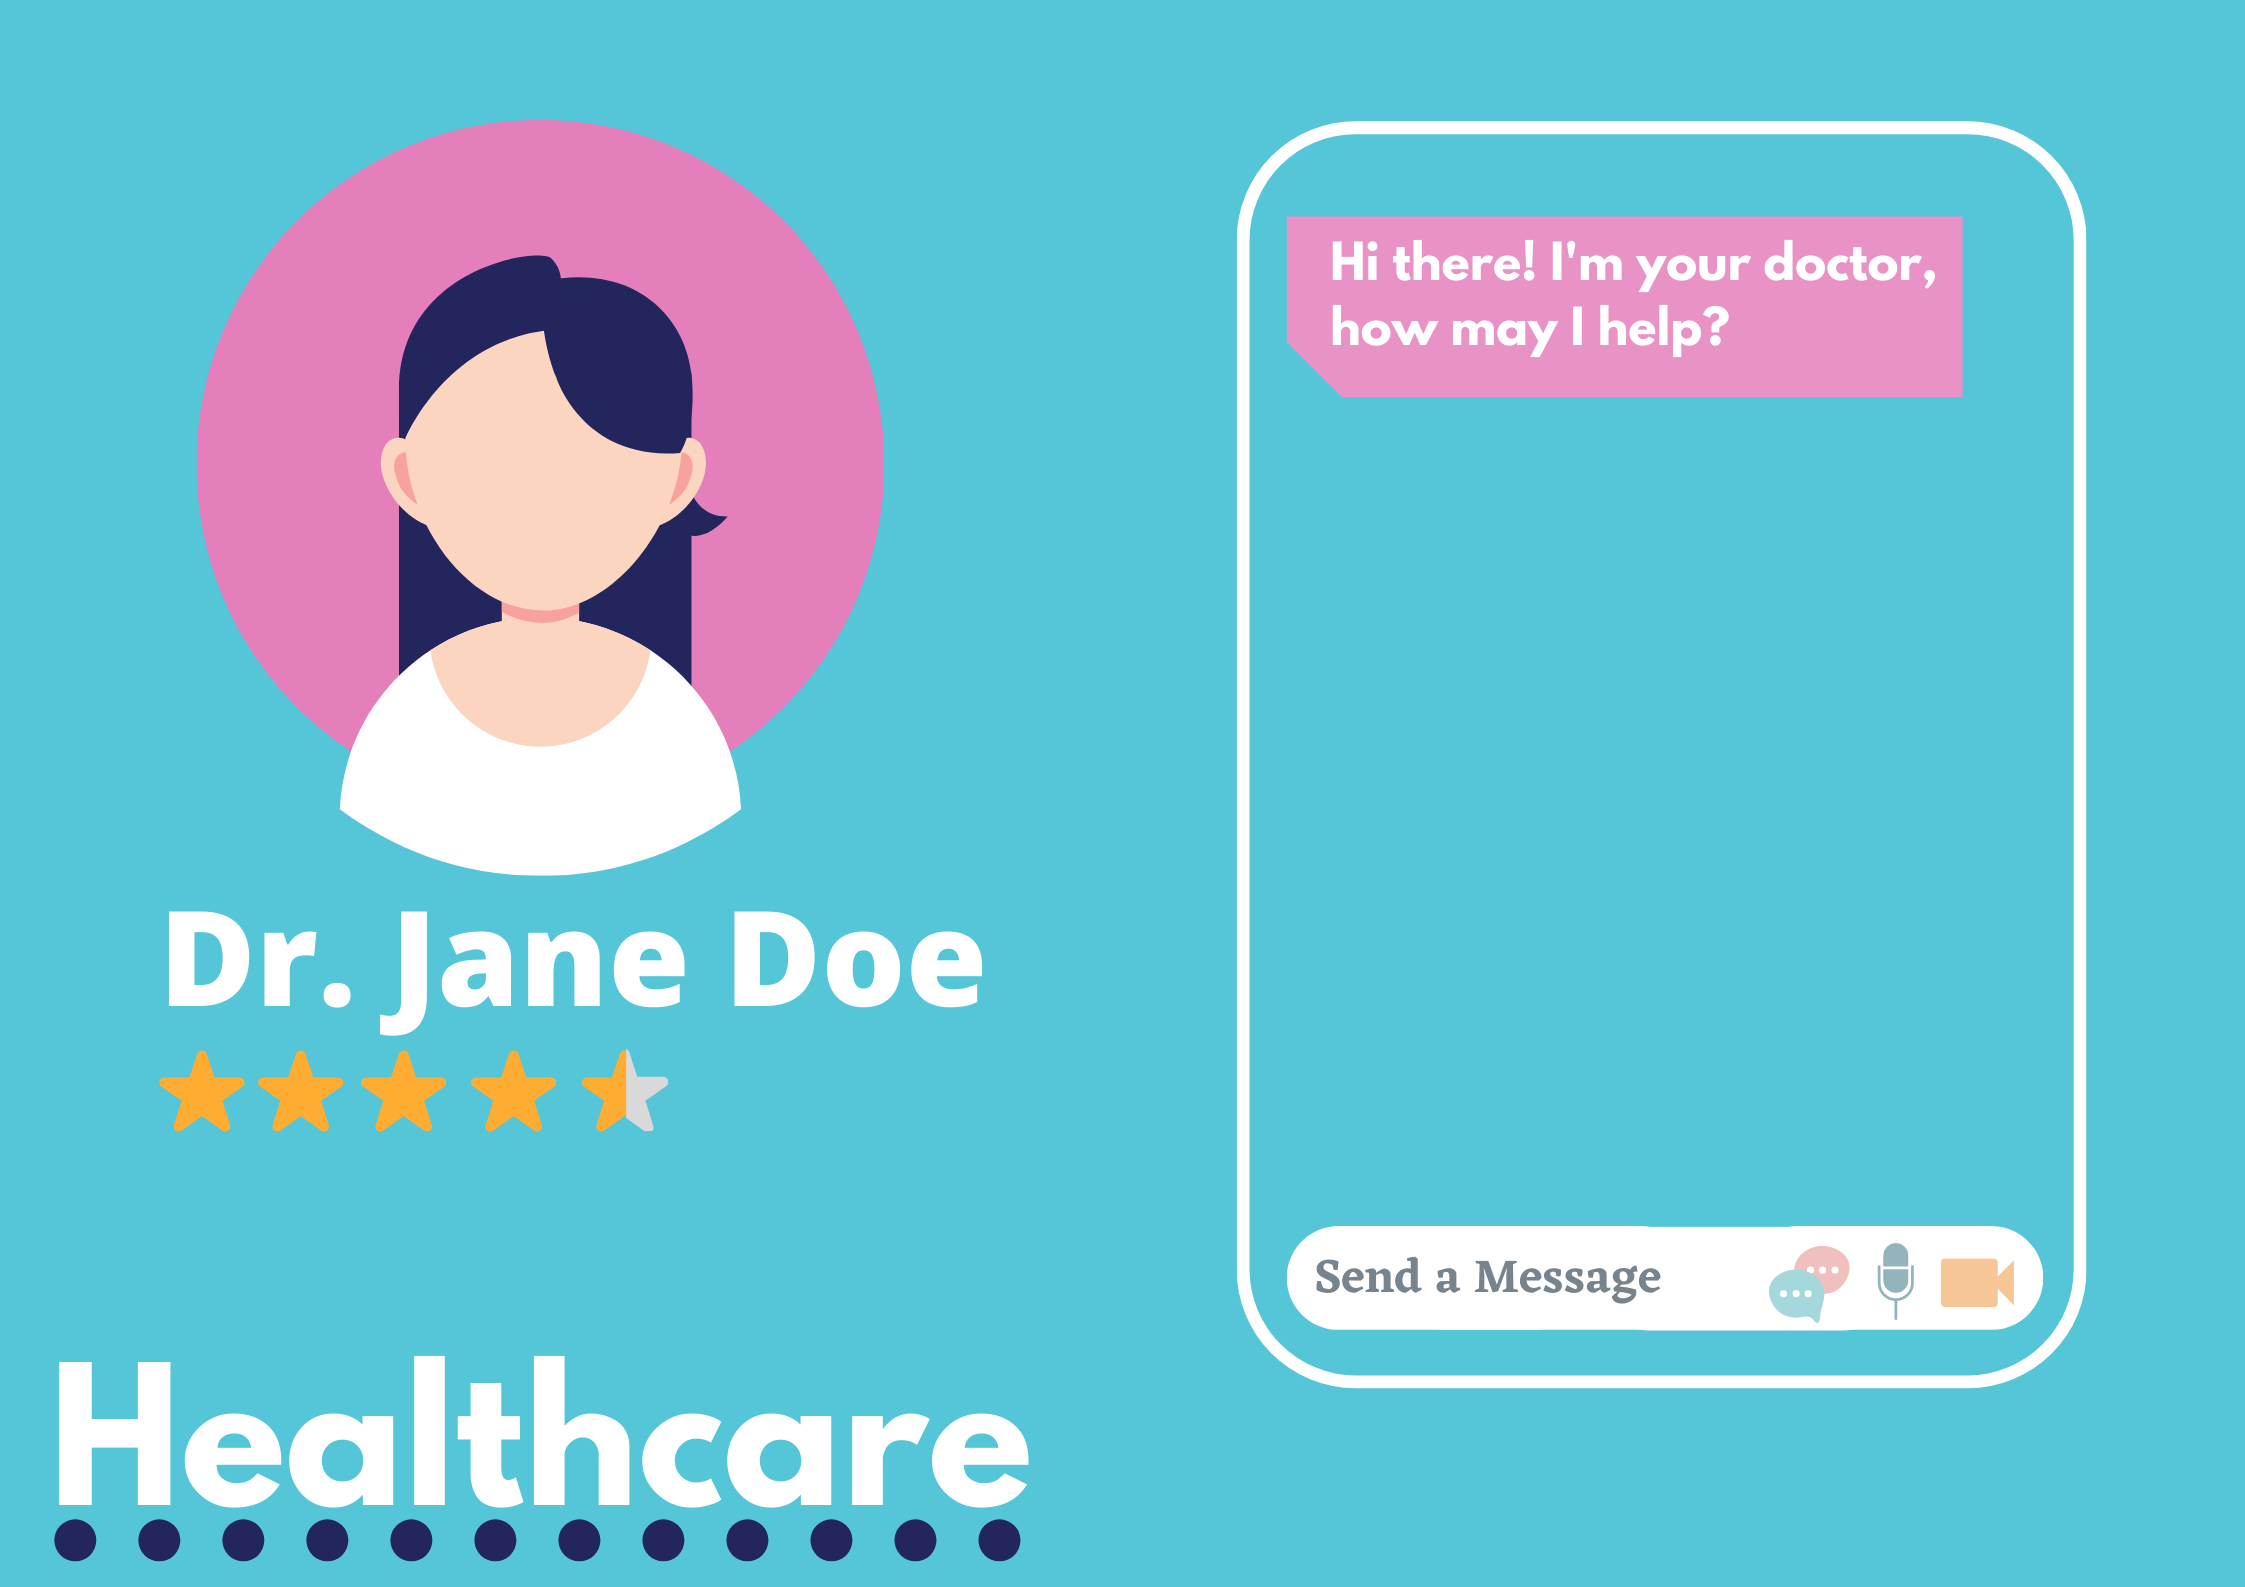 Image of a telehealth related chat between doctor and patient